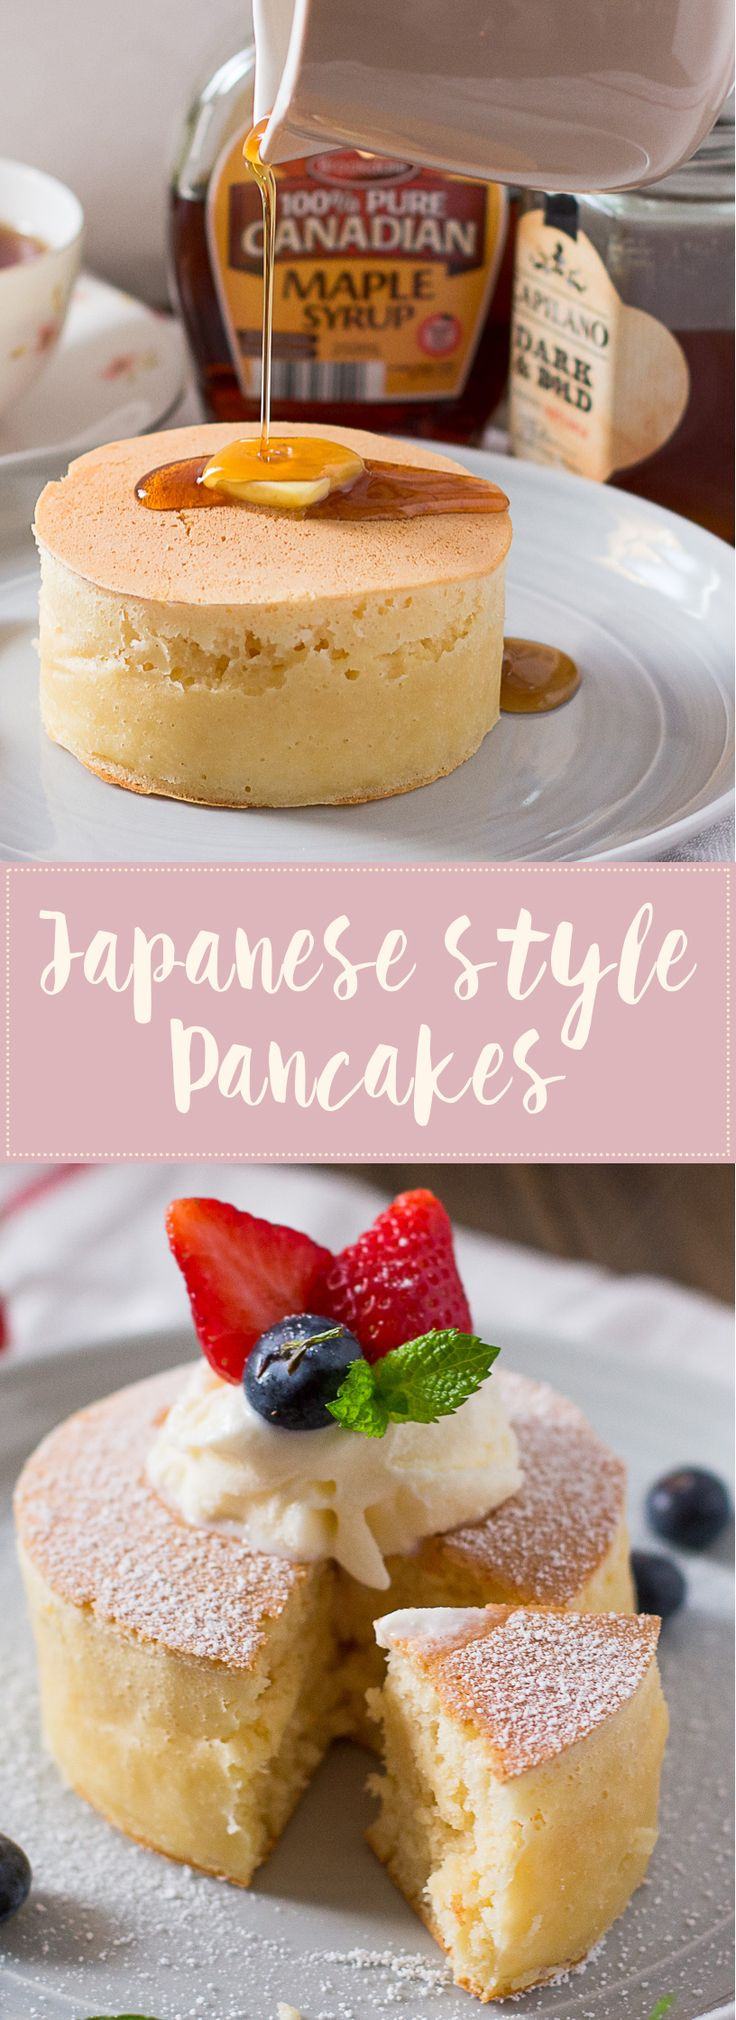 Extra thick and fluffy Japanese Style pancakes Unlike anything you've ever had before and so good!!